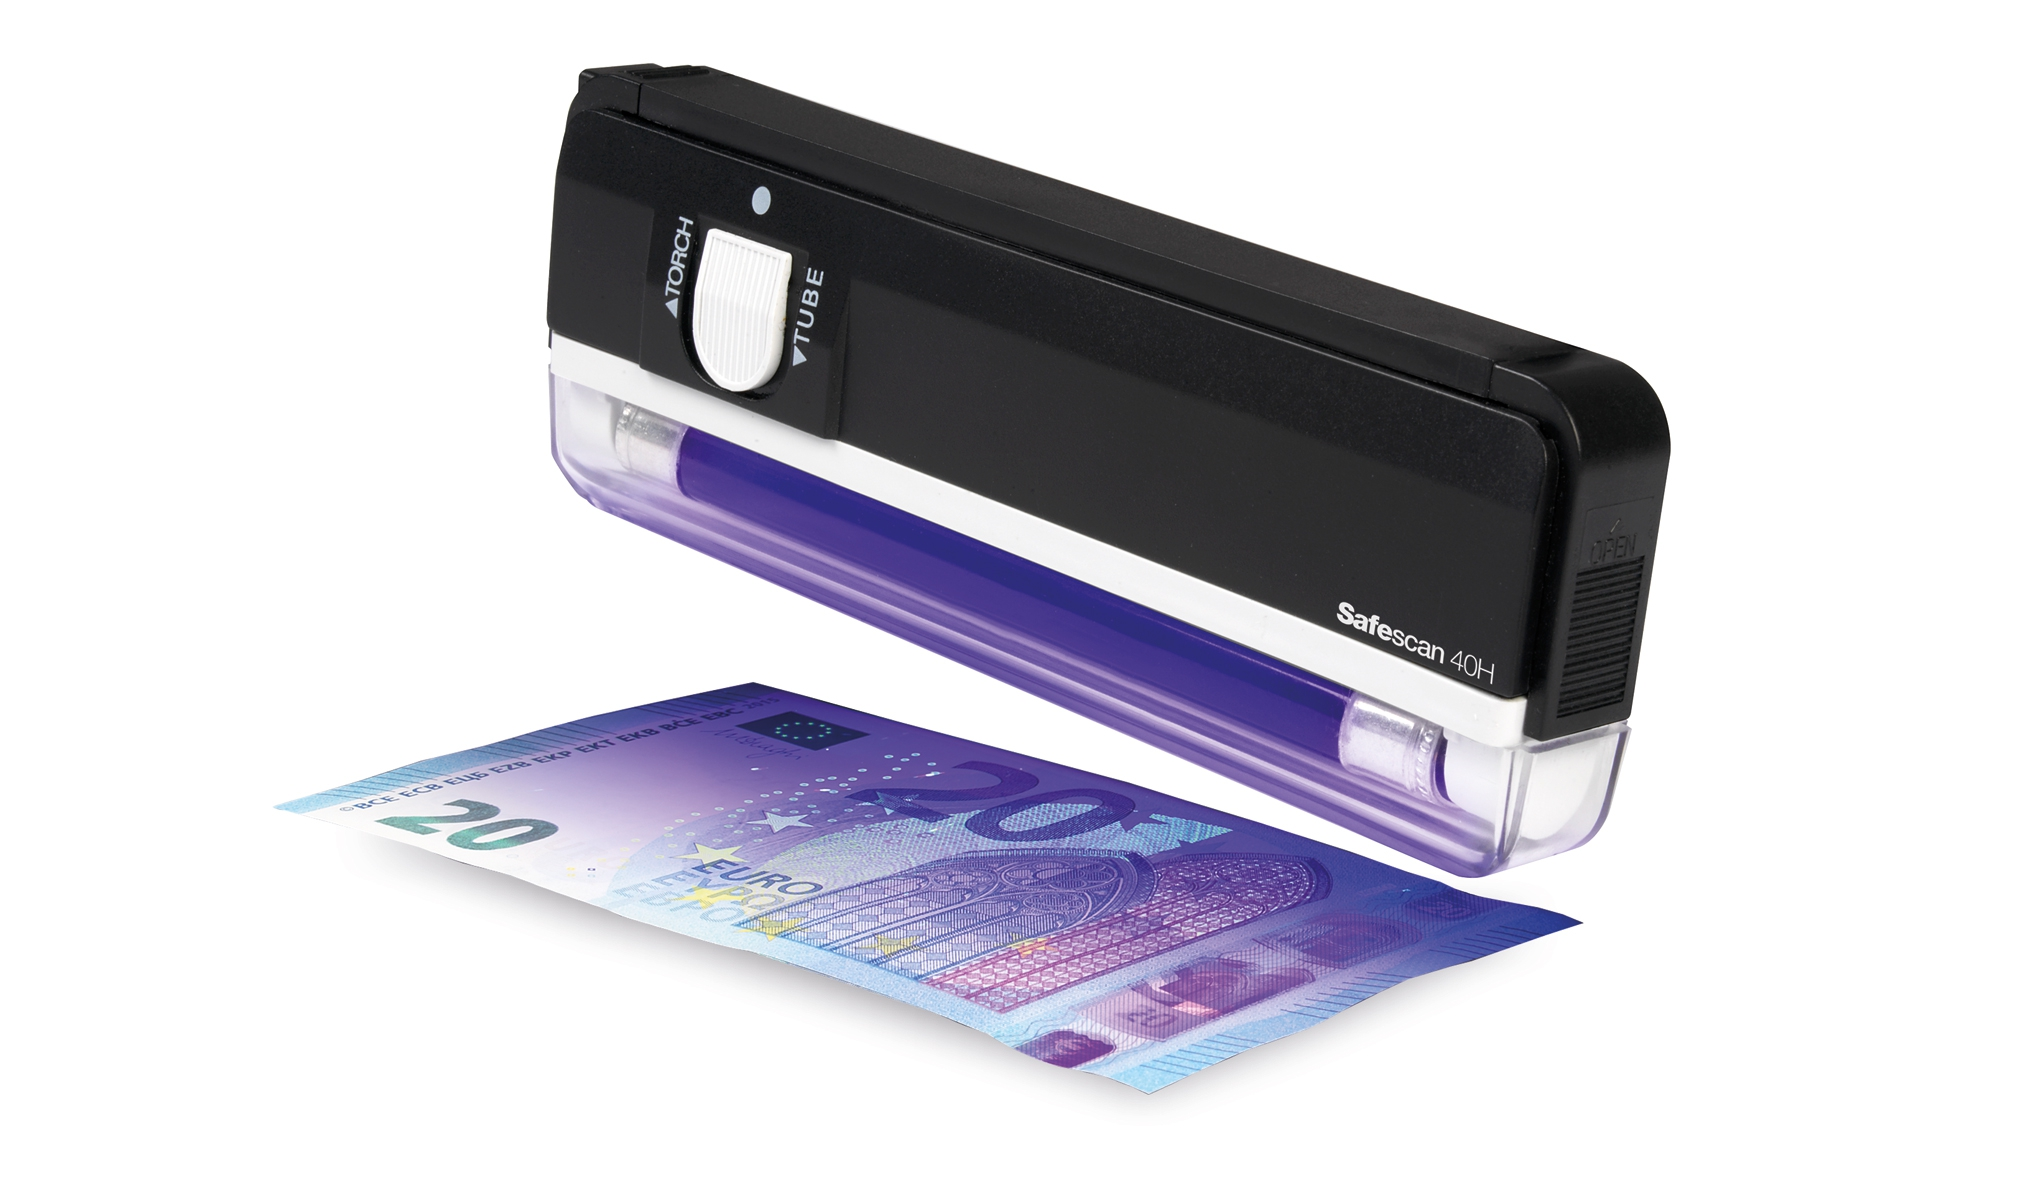 safescan-40h-detector-de-billetes-falsos-portatil